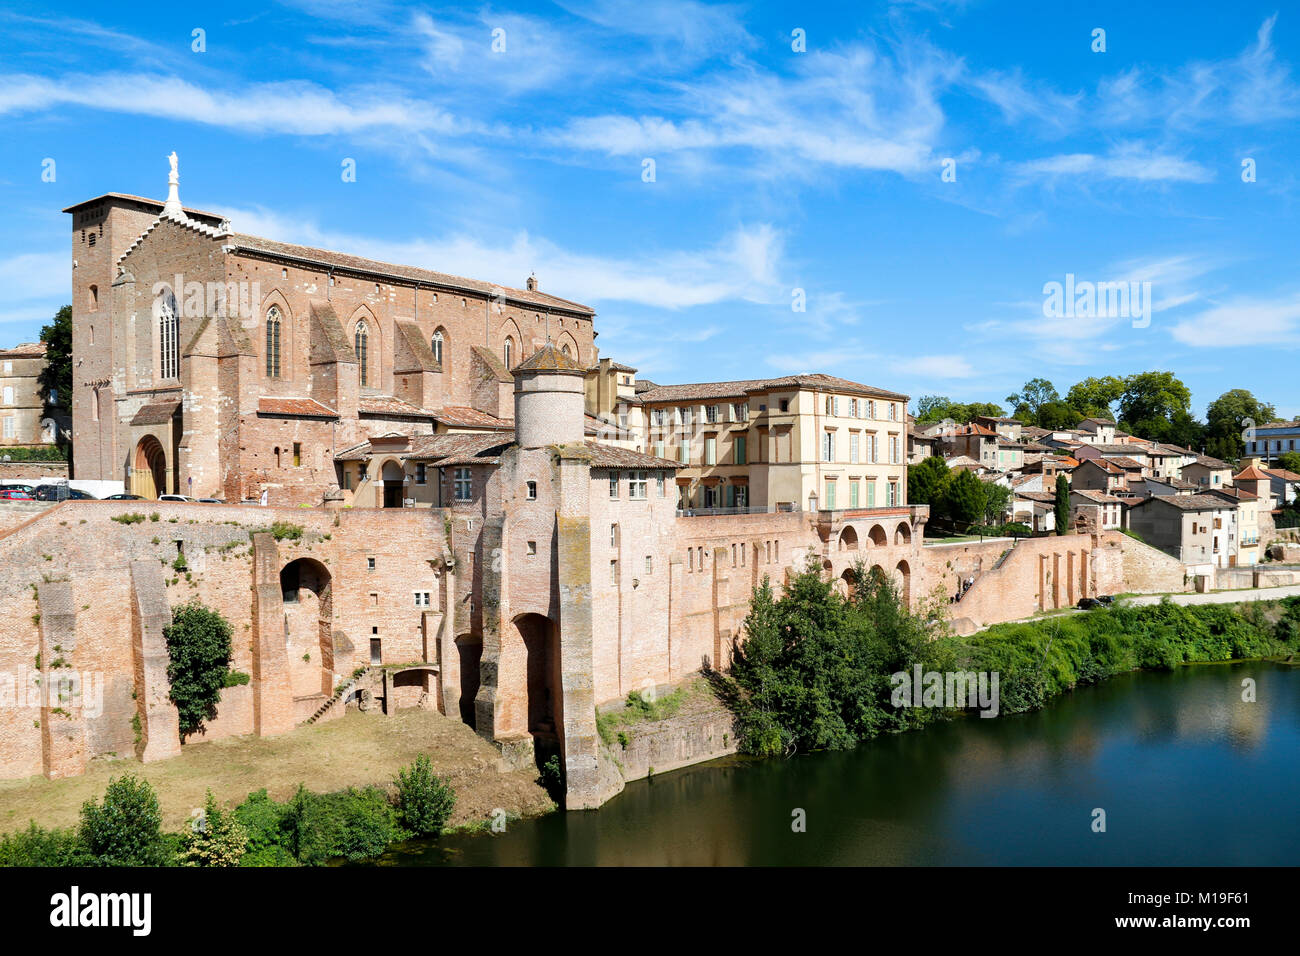 Office De Tourisme Gaillac Abbaye Saint Michel In The Town Of Gaillac Which Sits On The